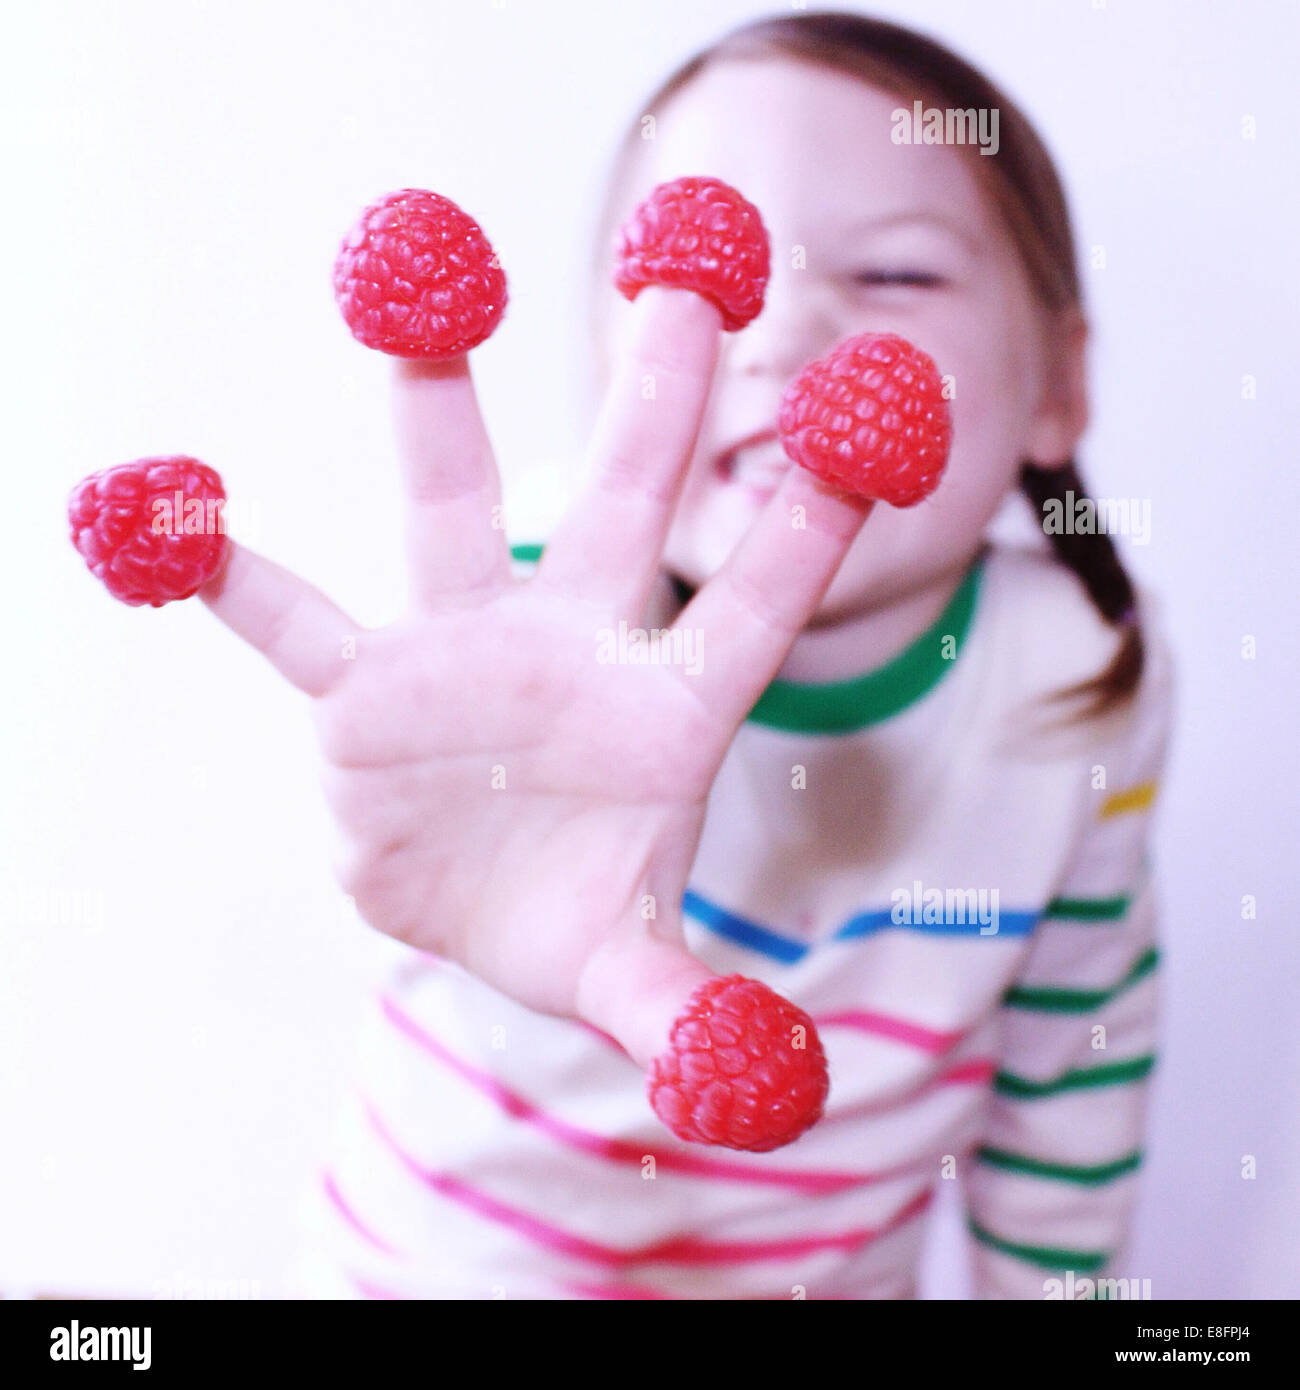 Girl with raspberries on her fingers Stock Photo